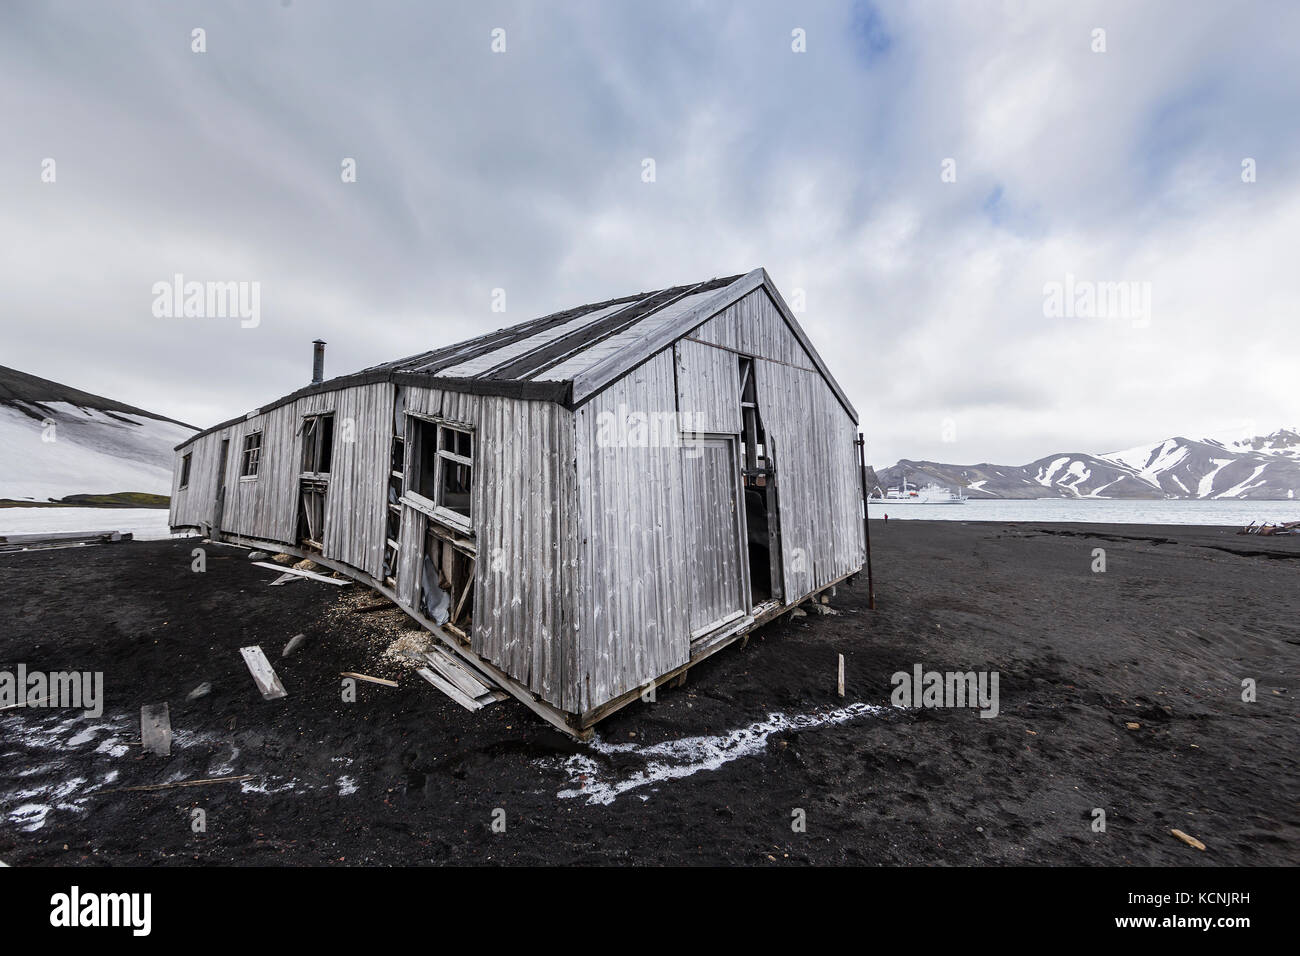 Long abandoned buildings slowly deteriate in the harsh and bleak environment at Deception Island, South Shetland - Stock Image